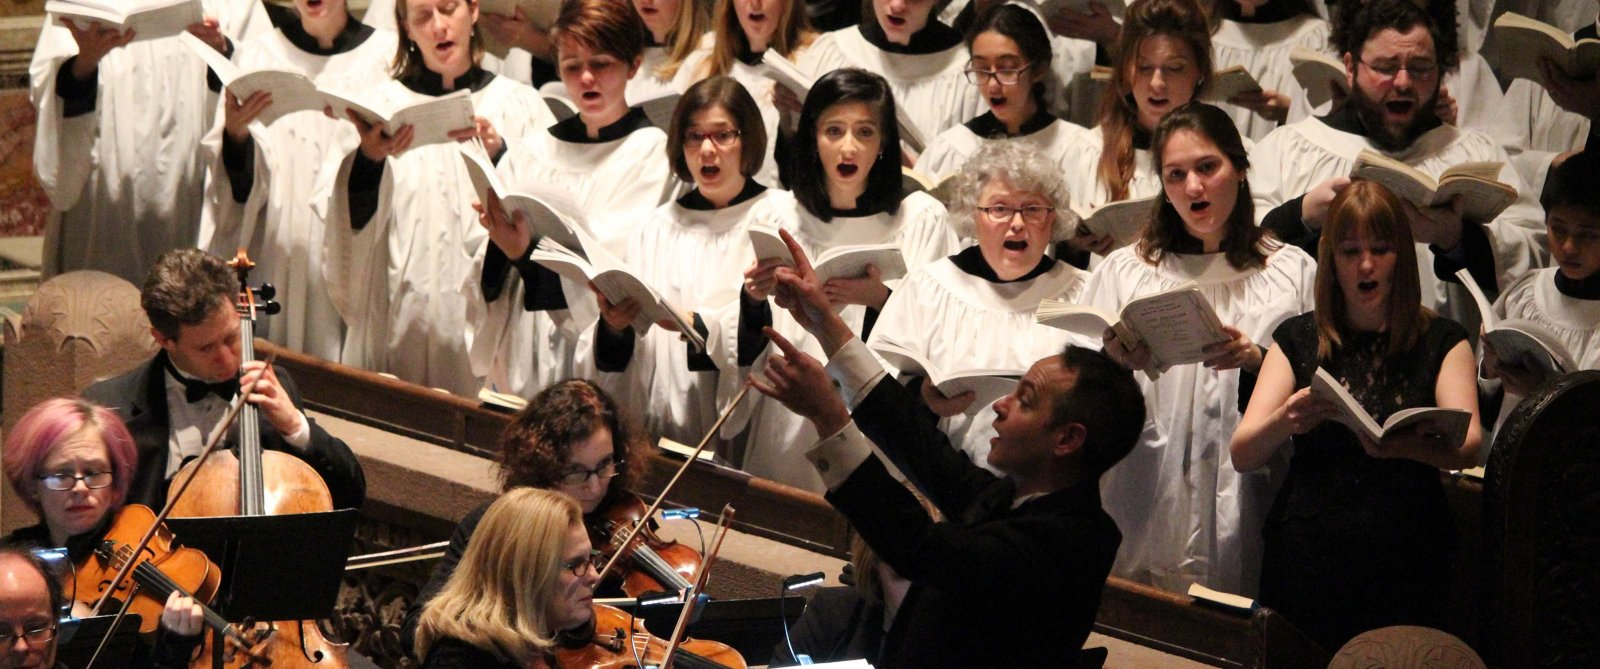 The Trinity Choir & Orchestra in concert.